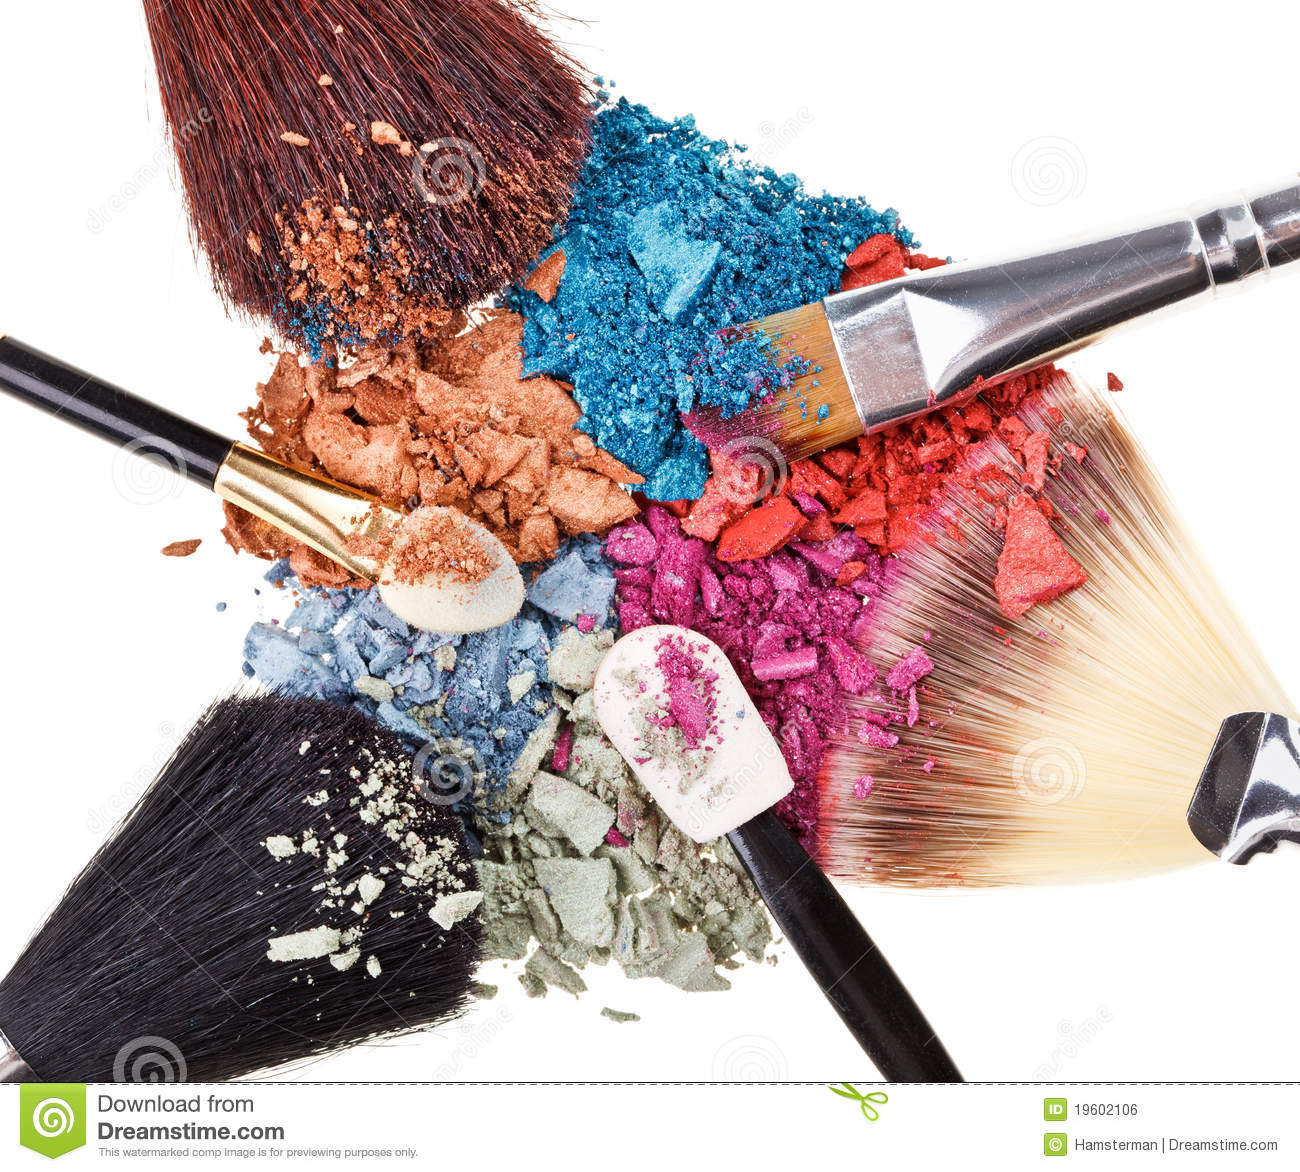 Composition with makeup brushes and eye shadow